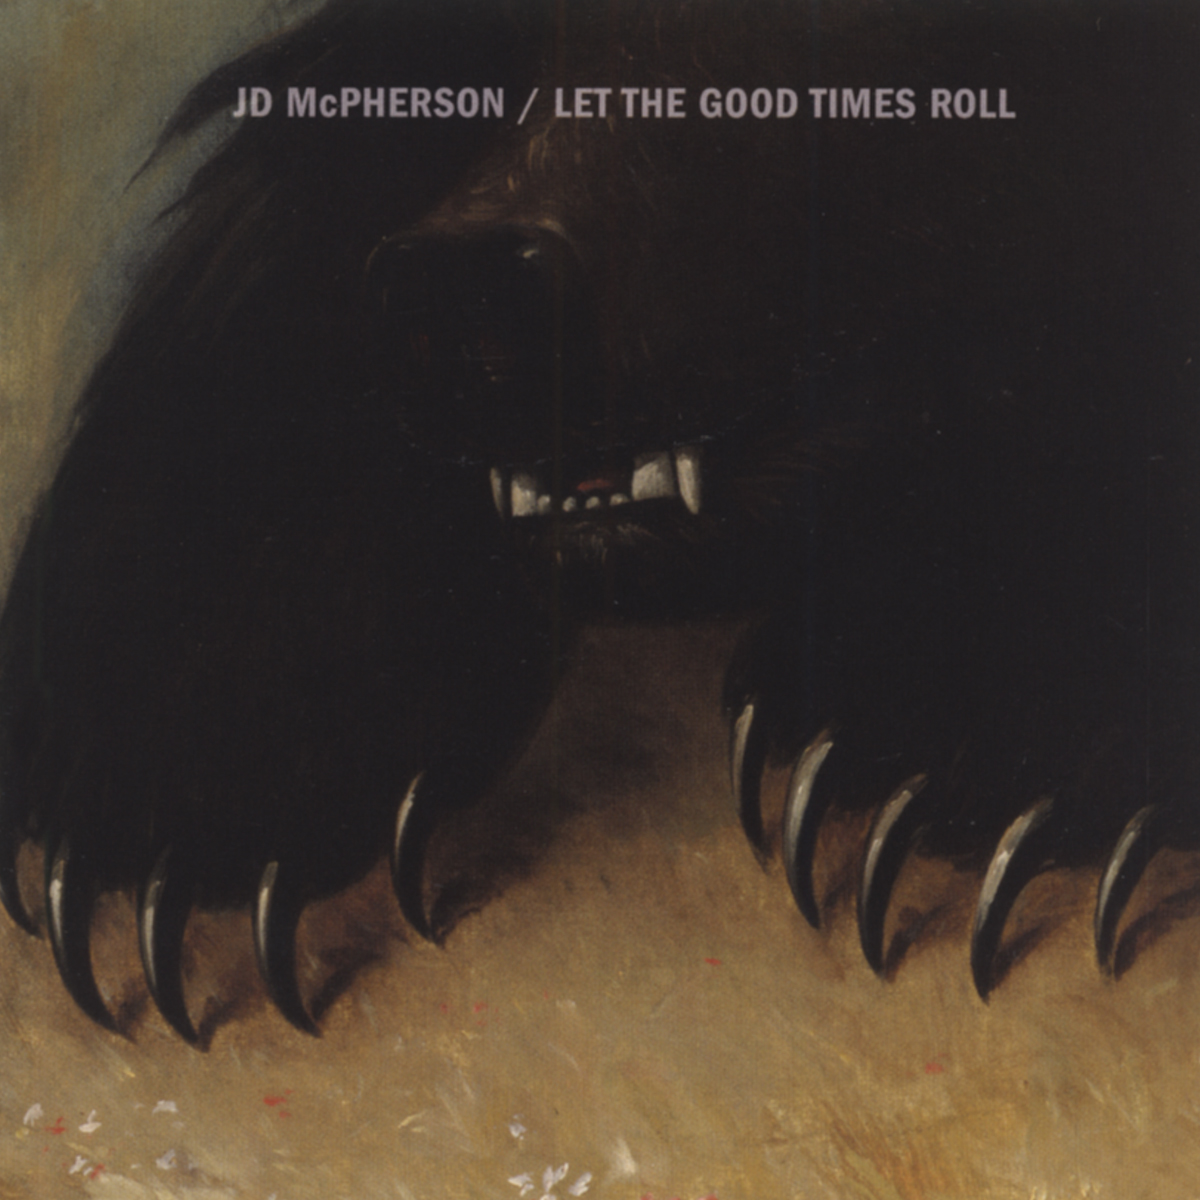 jd mcpherson it shook me up Jd mcpherson is one of those talents cut from that same artistic cloth growing up in southern oklahoma, mcpherson it shook me up head over heels.